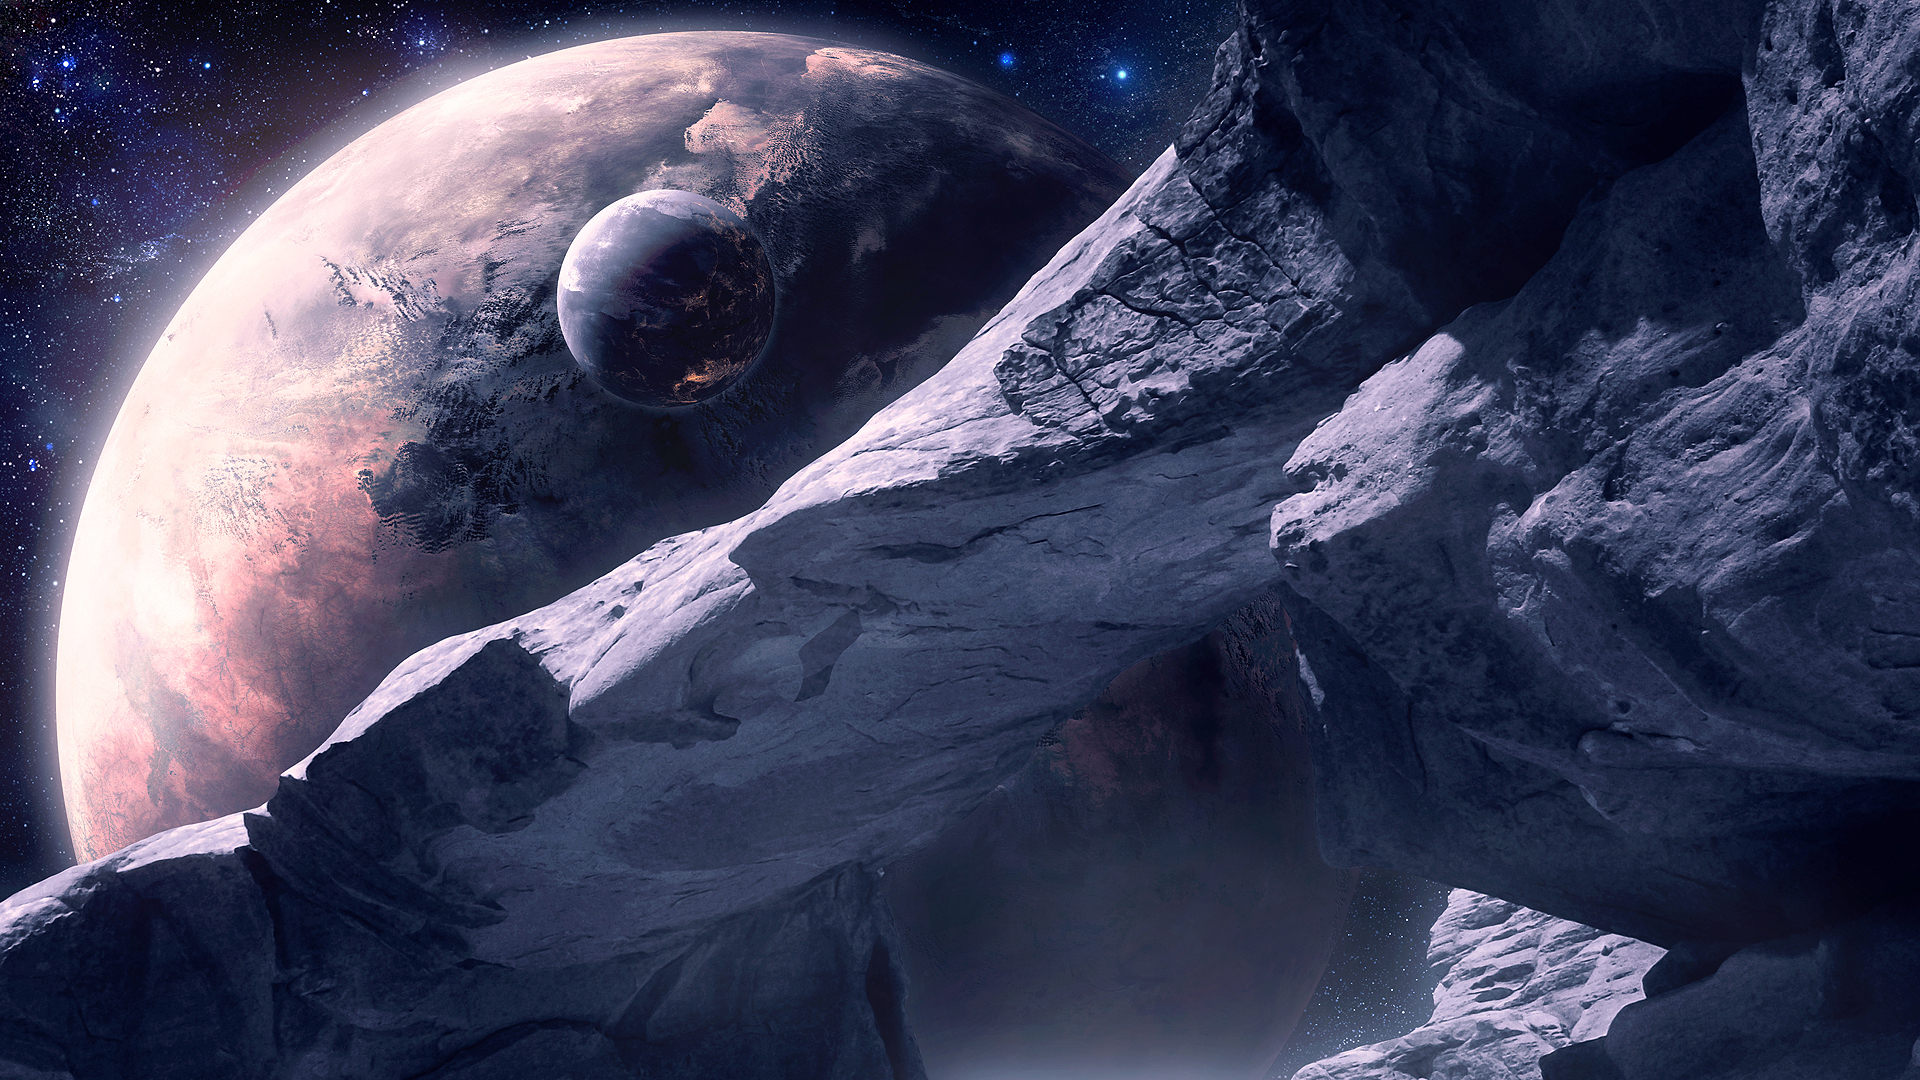 Sci fi science fiction planets landscapes stars outer moon ...